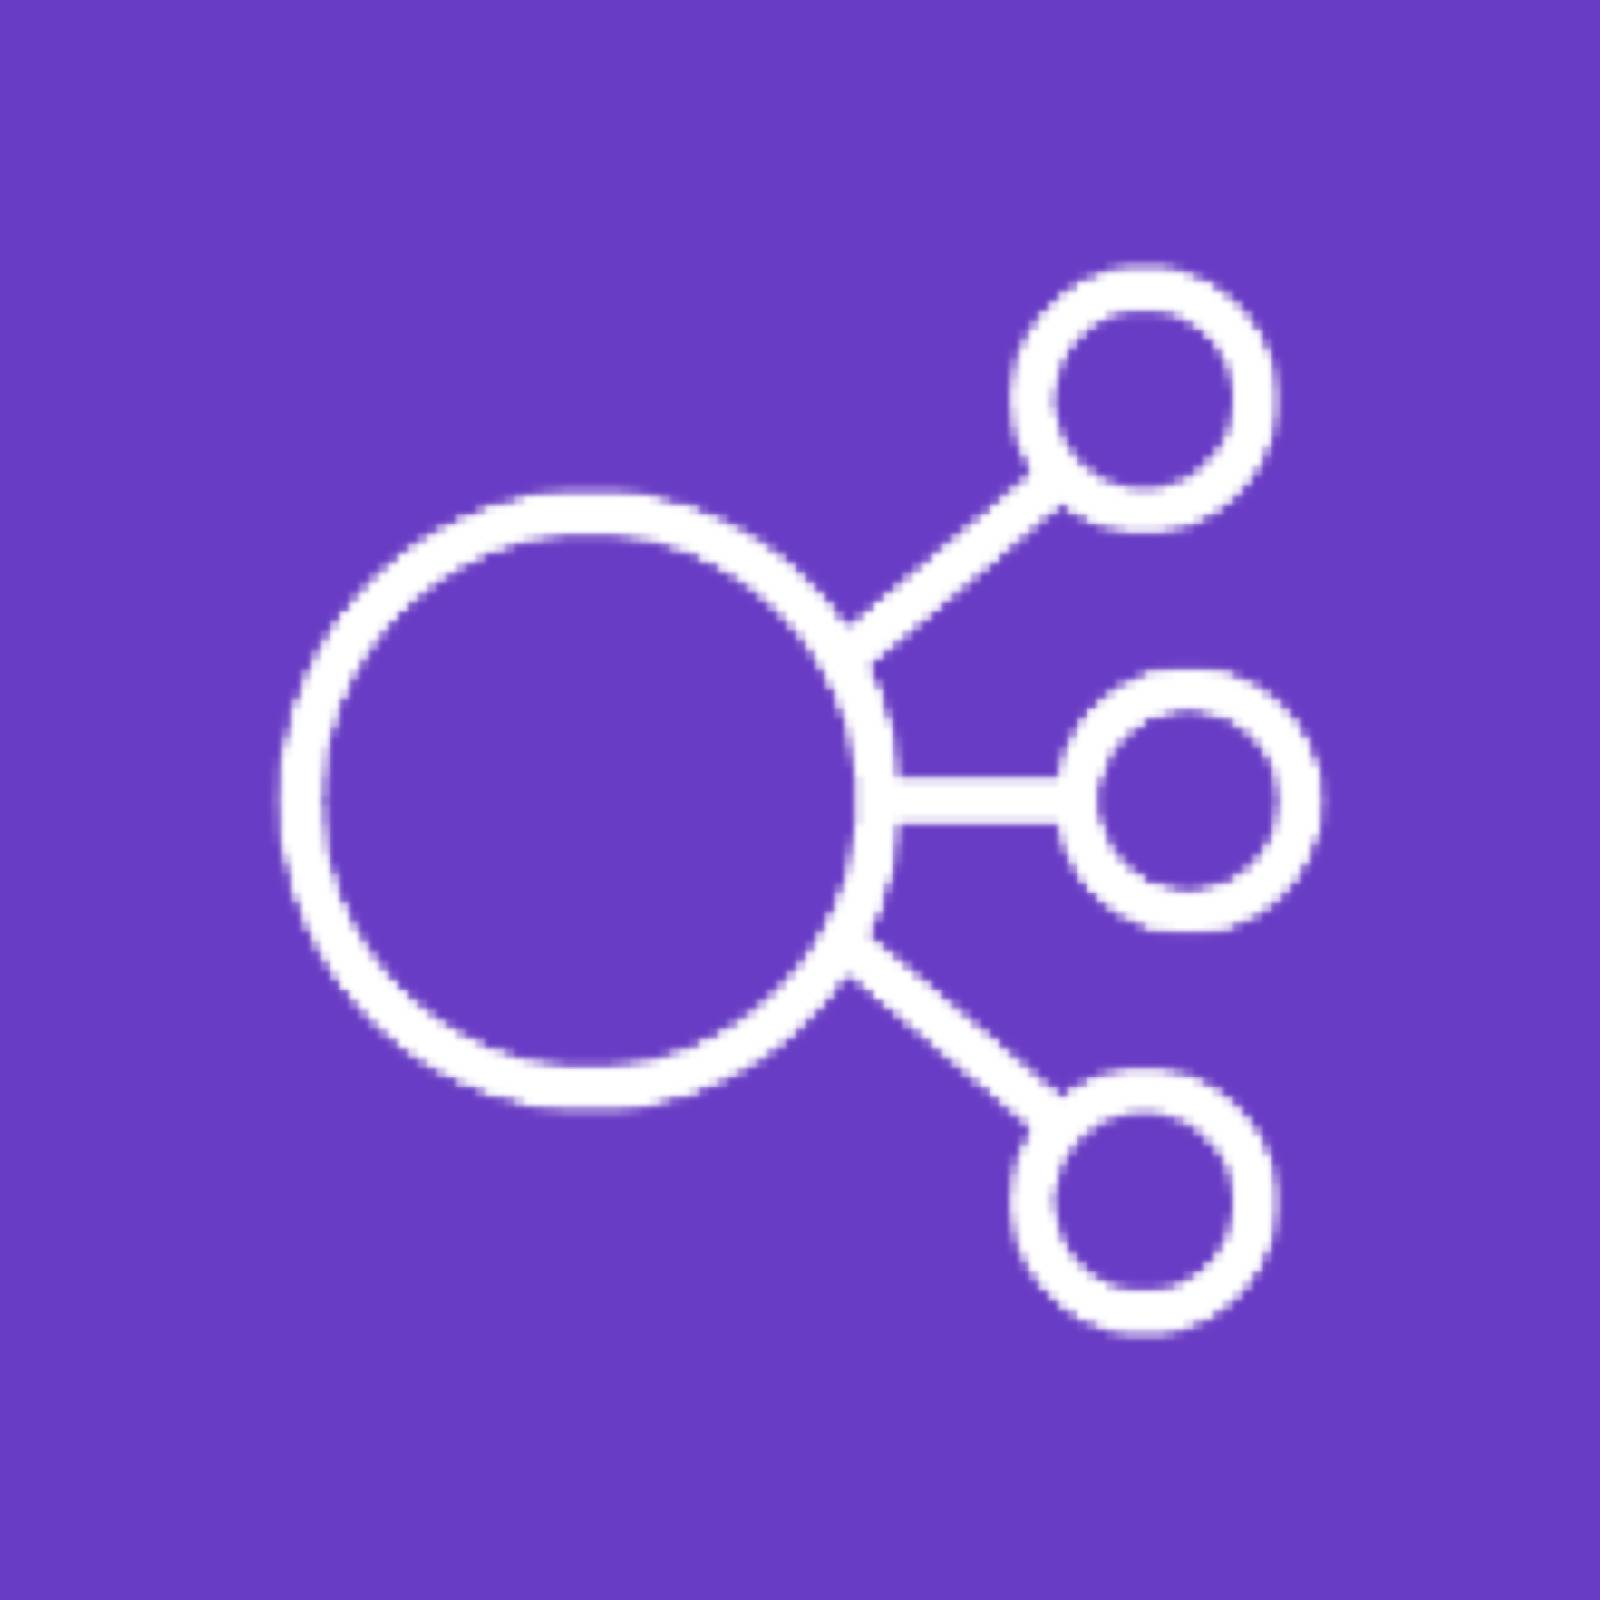 Elastic Load Balancing icon depicting a circle connected to three smaller circles against a purple background